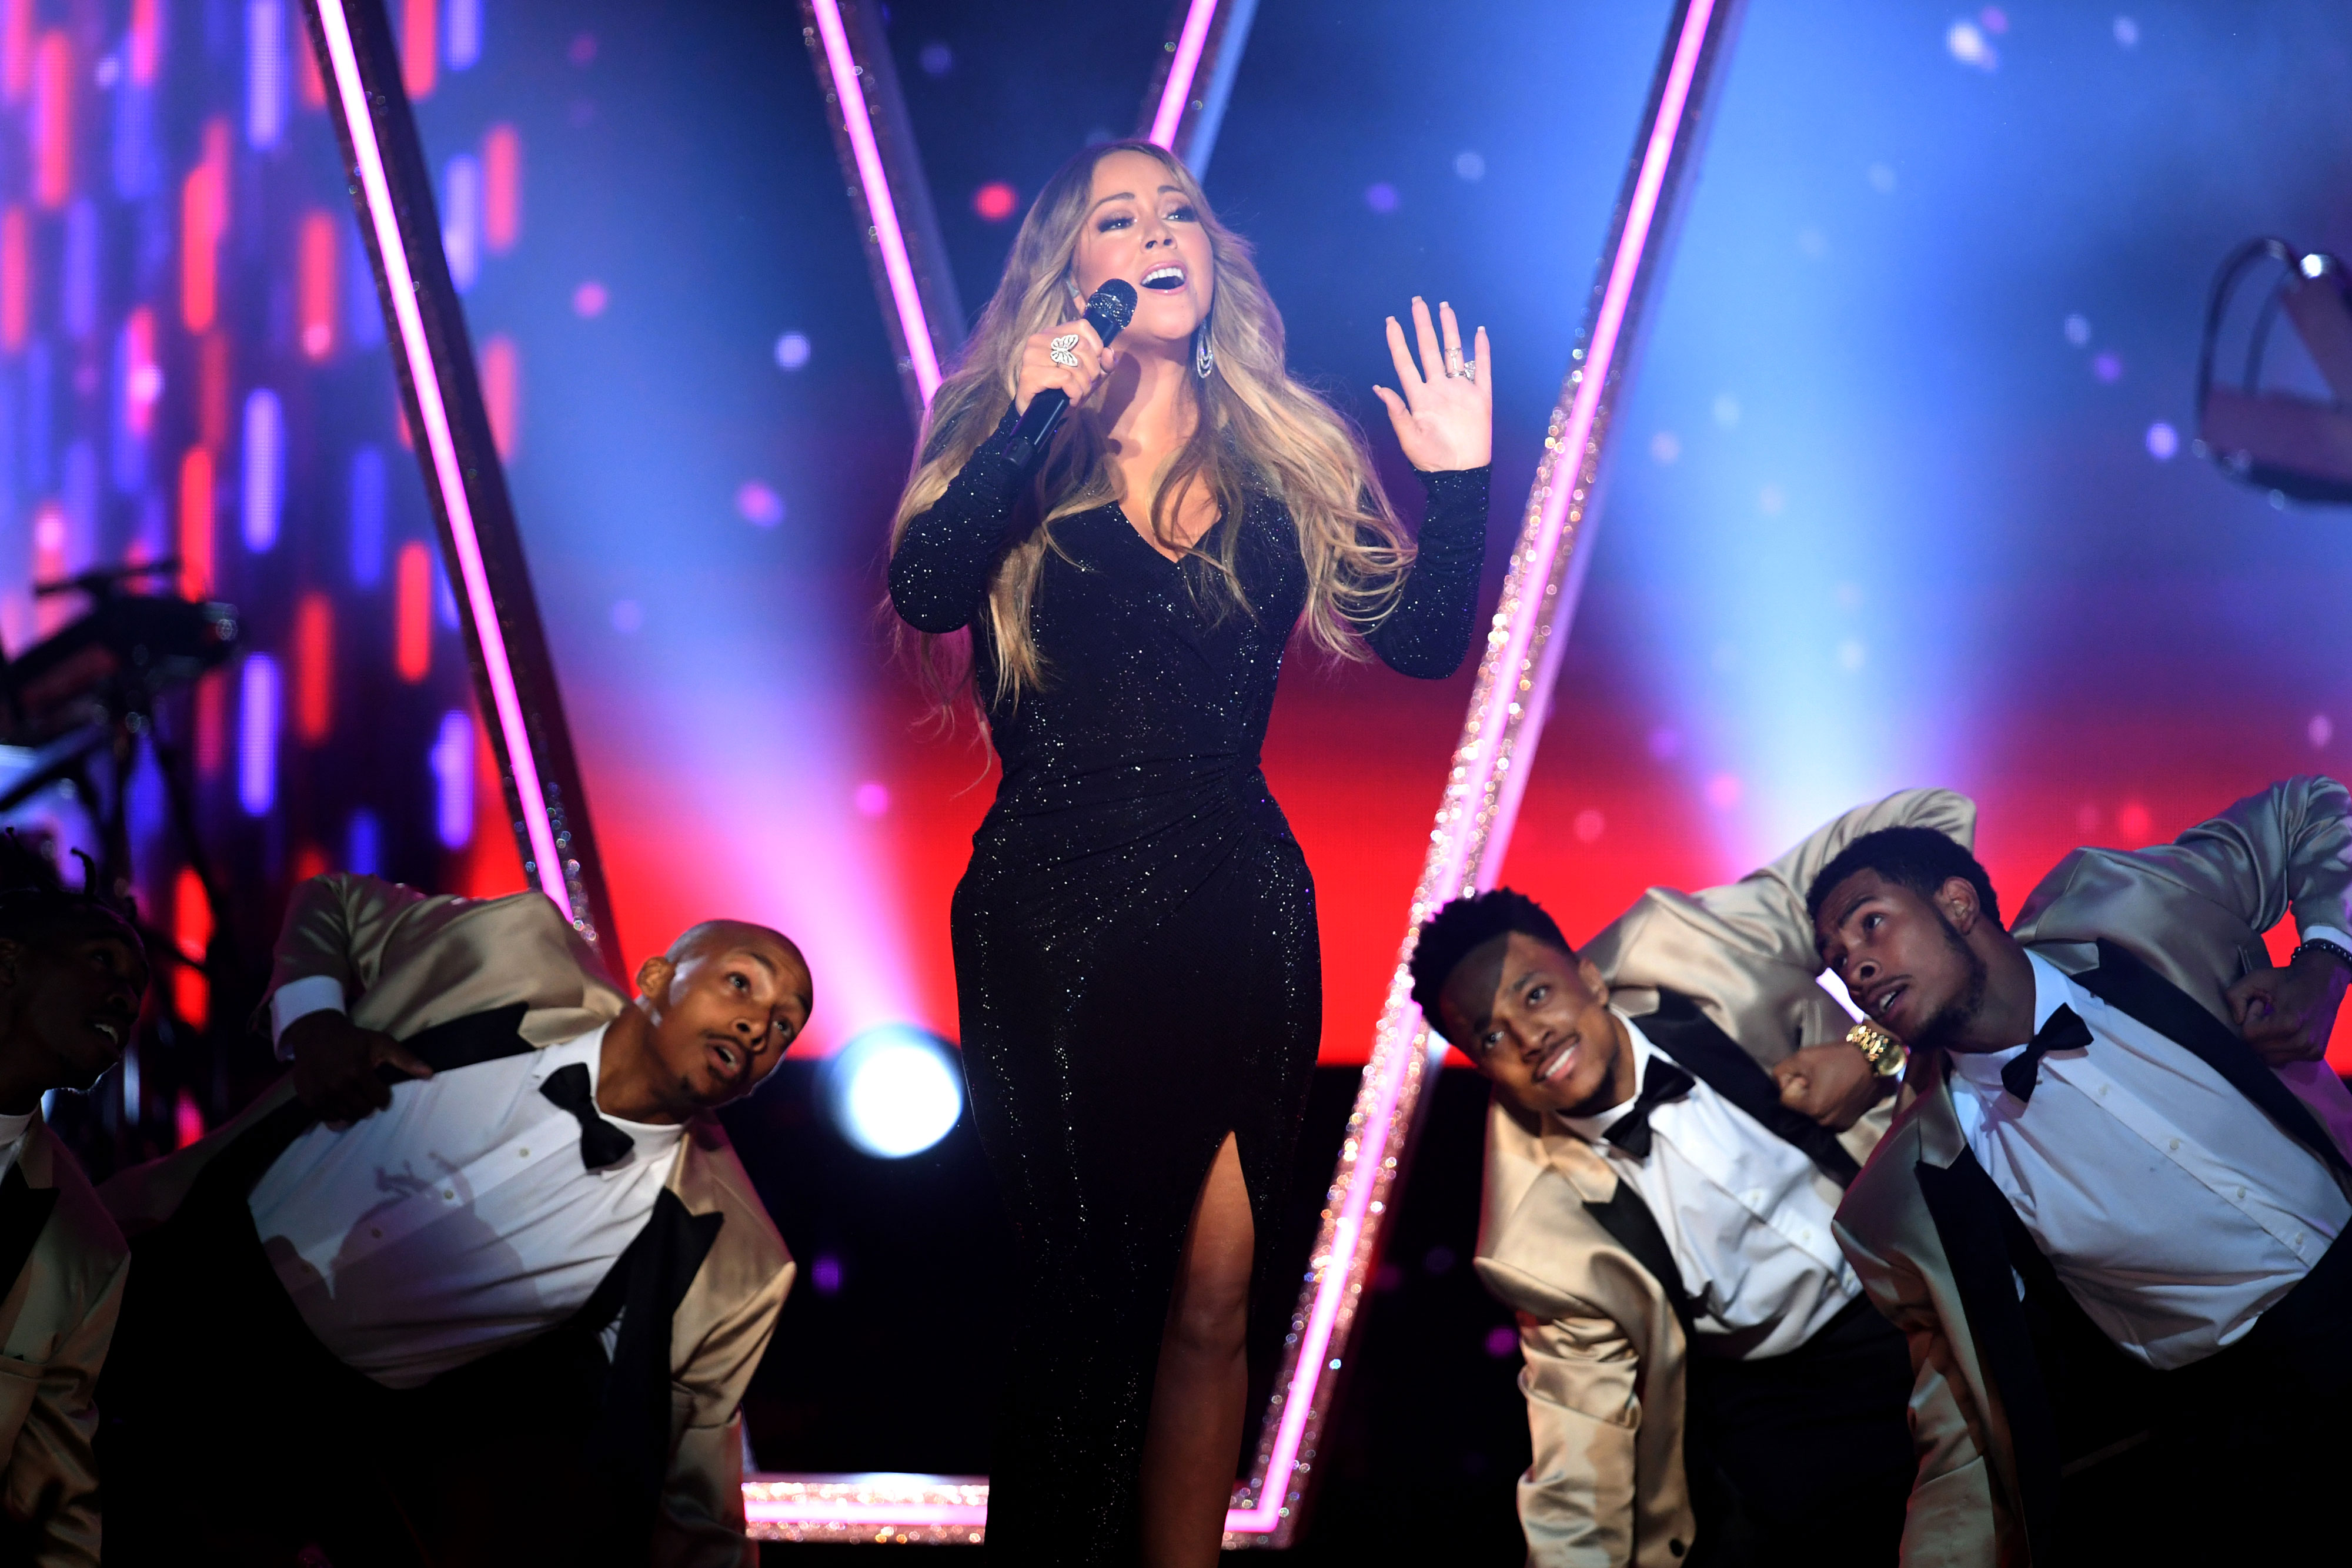 Billboard Music Awards 2019's Wildest Moments Mariah Carey - Honoree Mariah Carey performs onstage during the 2019 Billboard Music Awards at MGM Grand Garden Arena on May 01, 2019 in Las Vegas, Nevada.